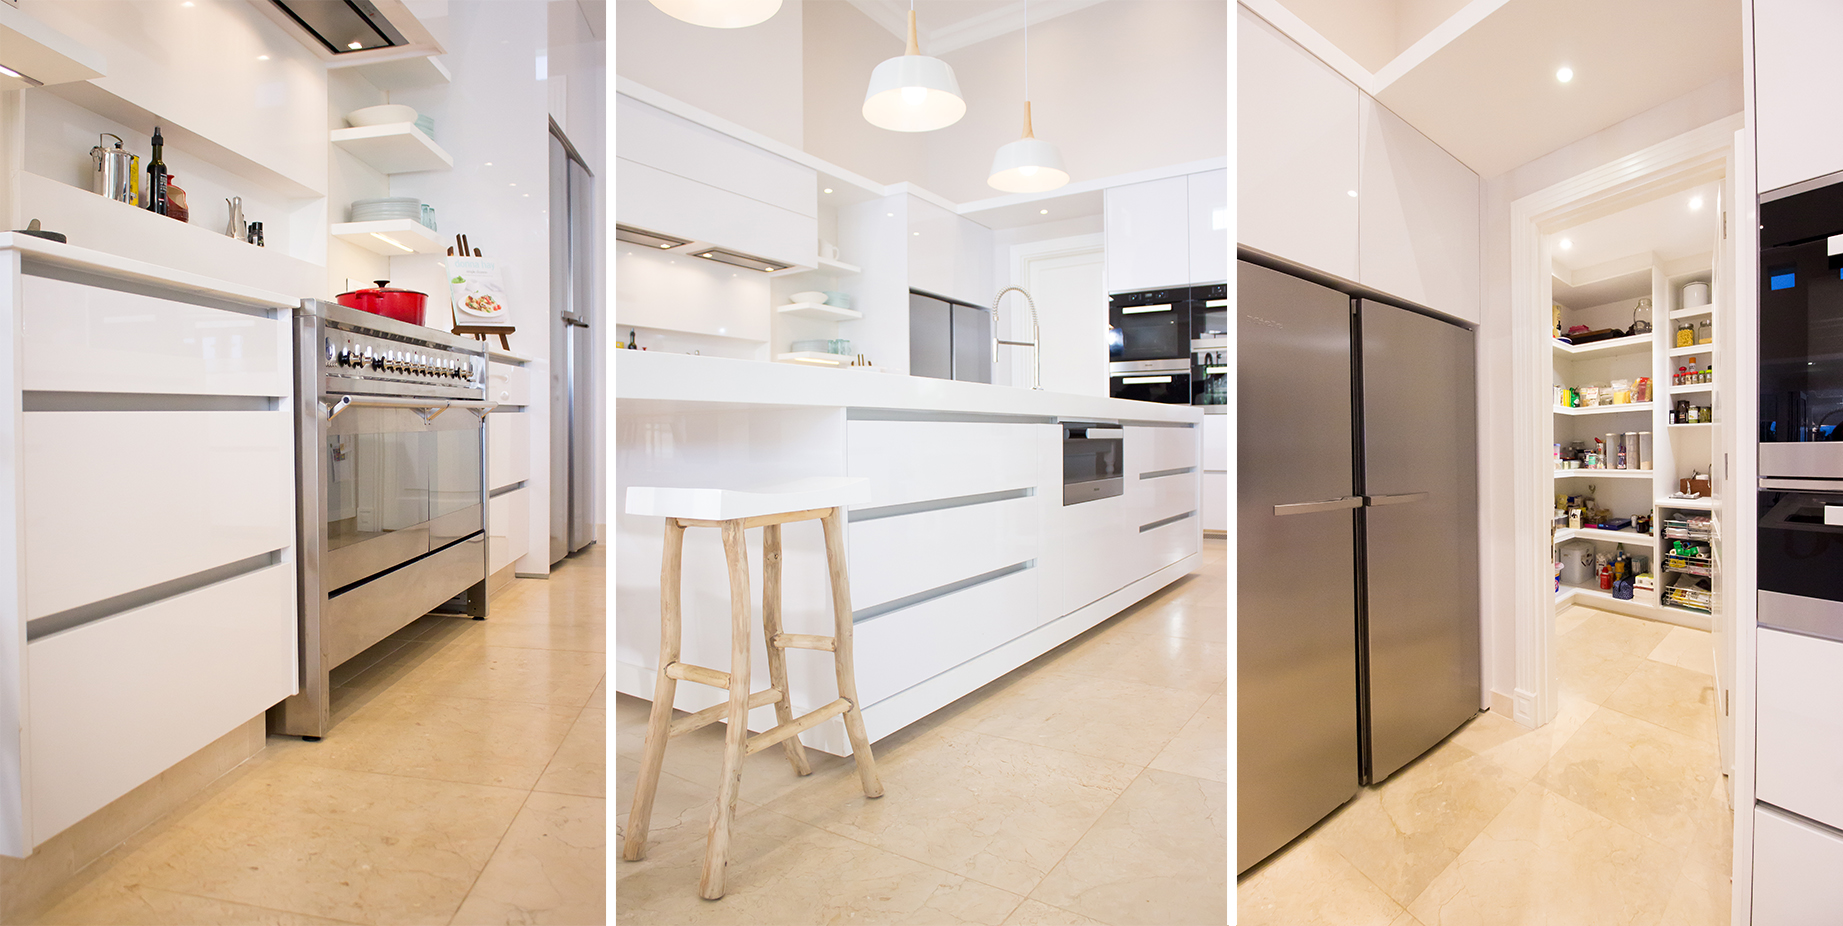 High gloss, white cabinetry, stainless steel appliances and polished Caesarstone help to complete this glamorous look.